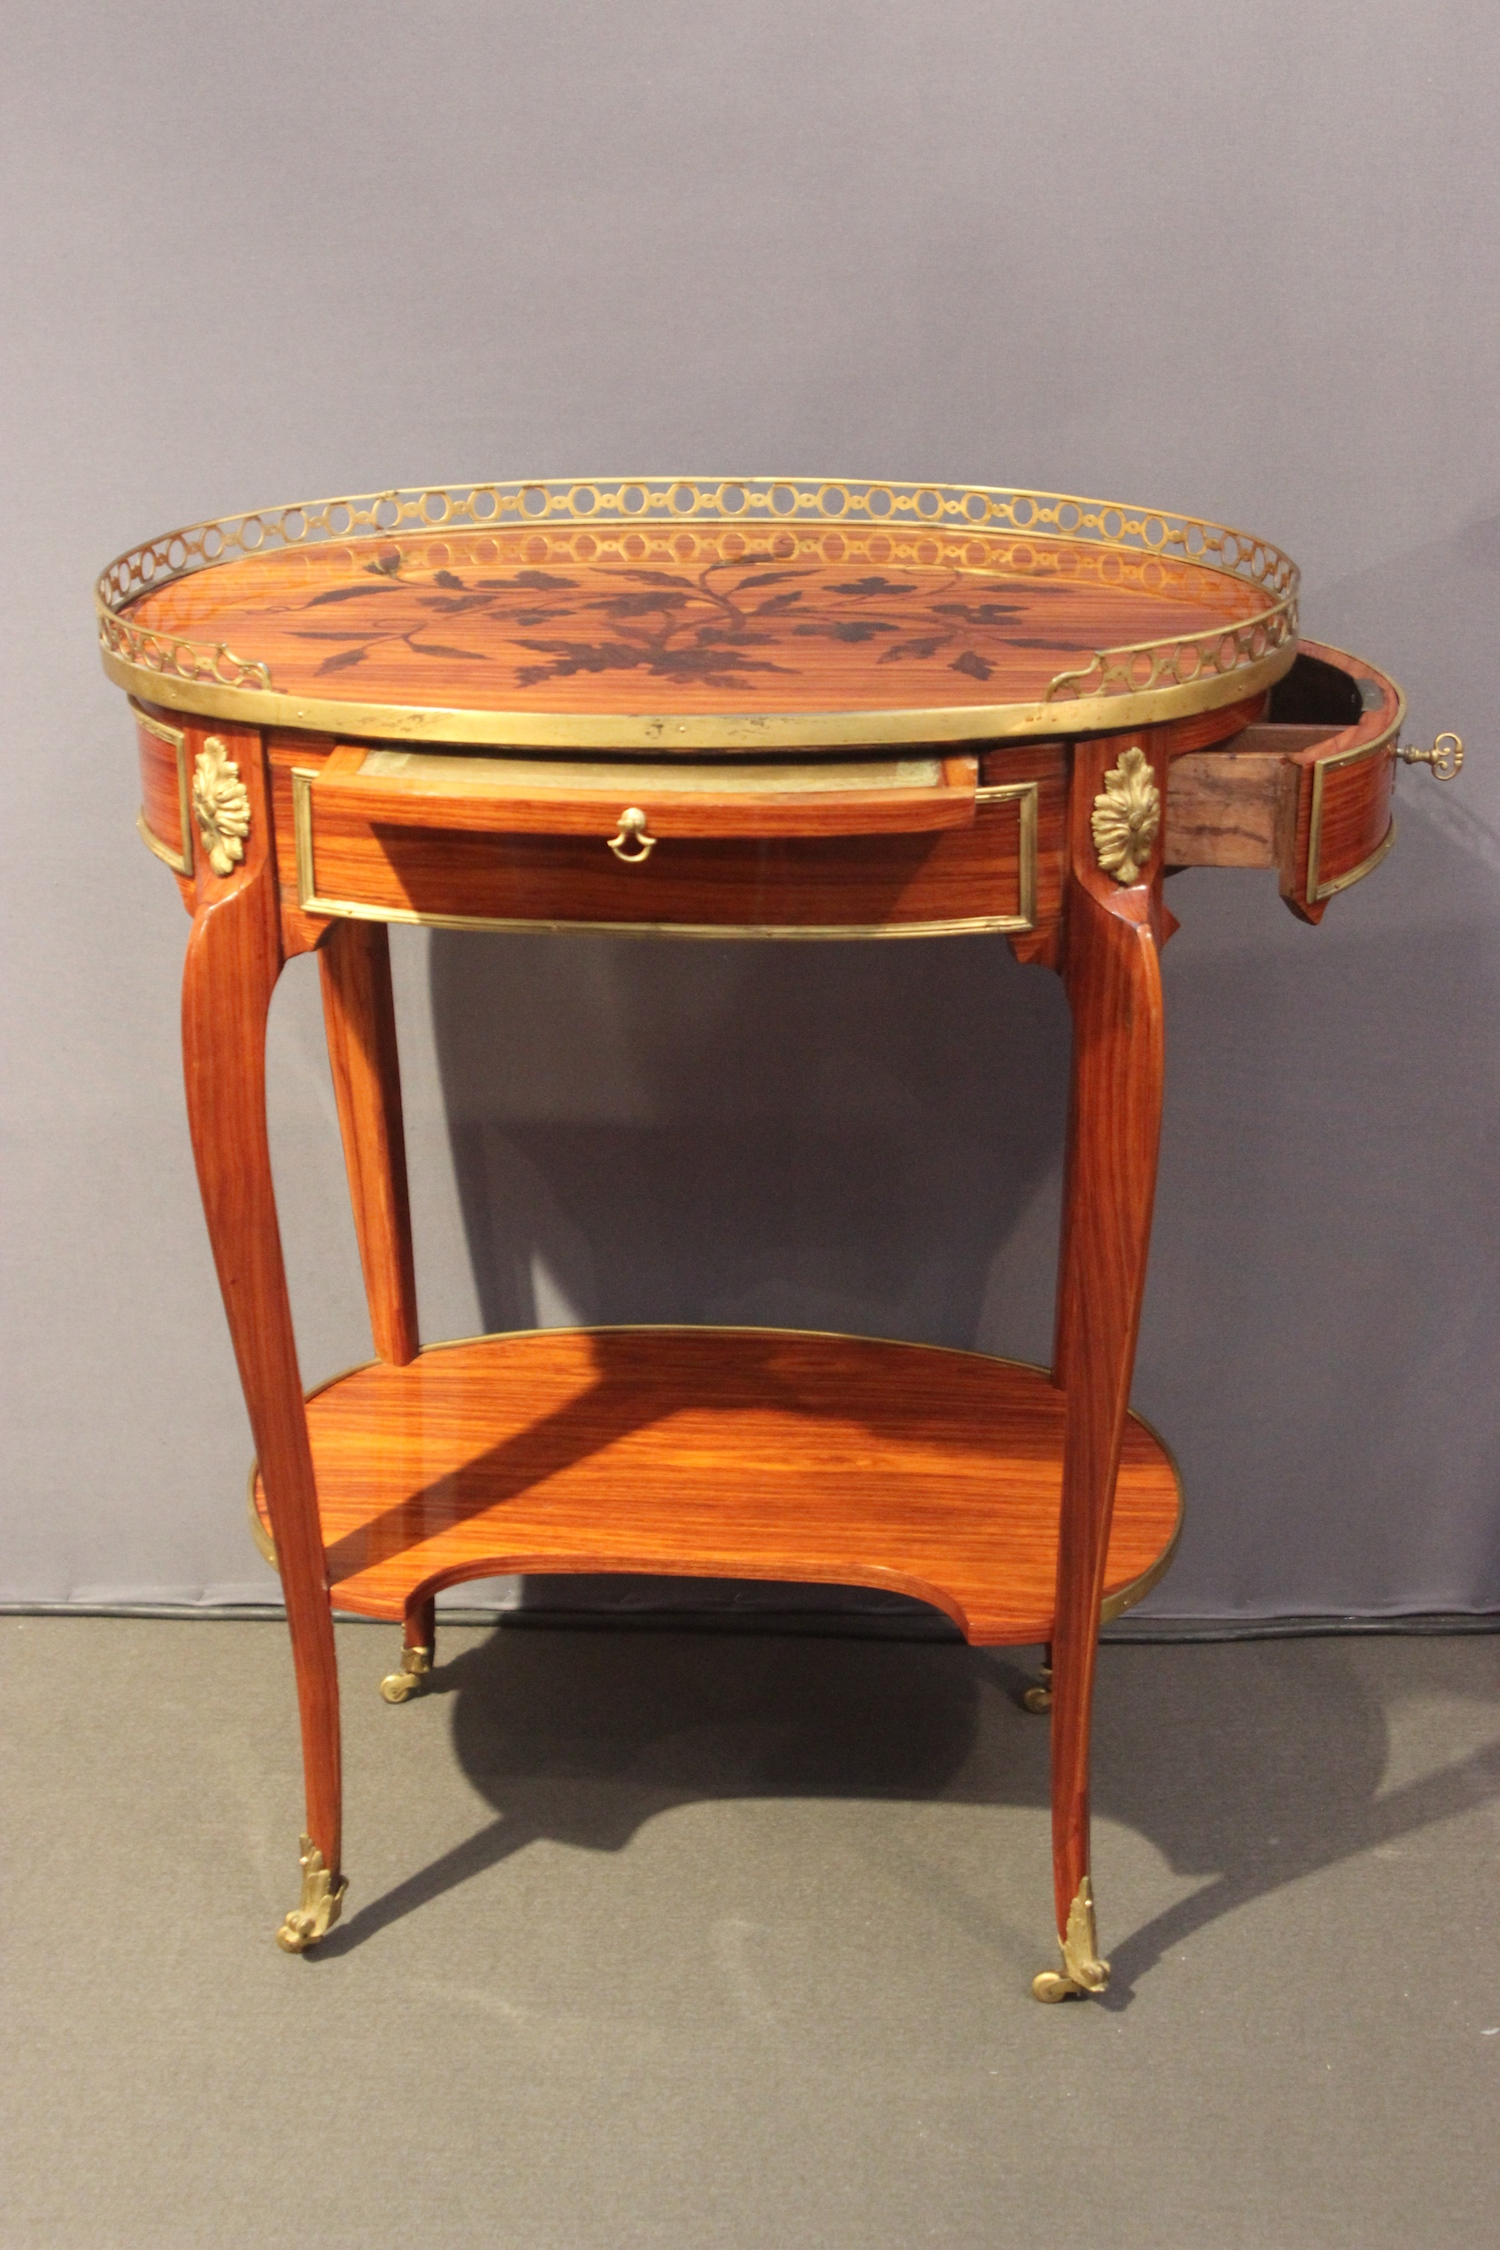 Petite table Transition